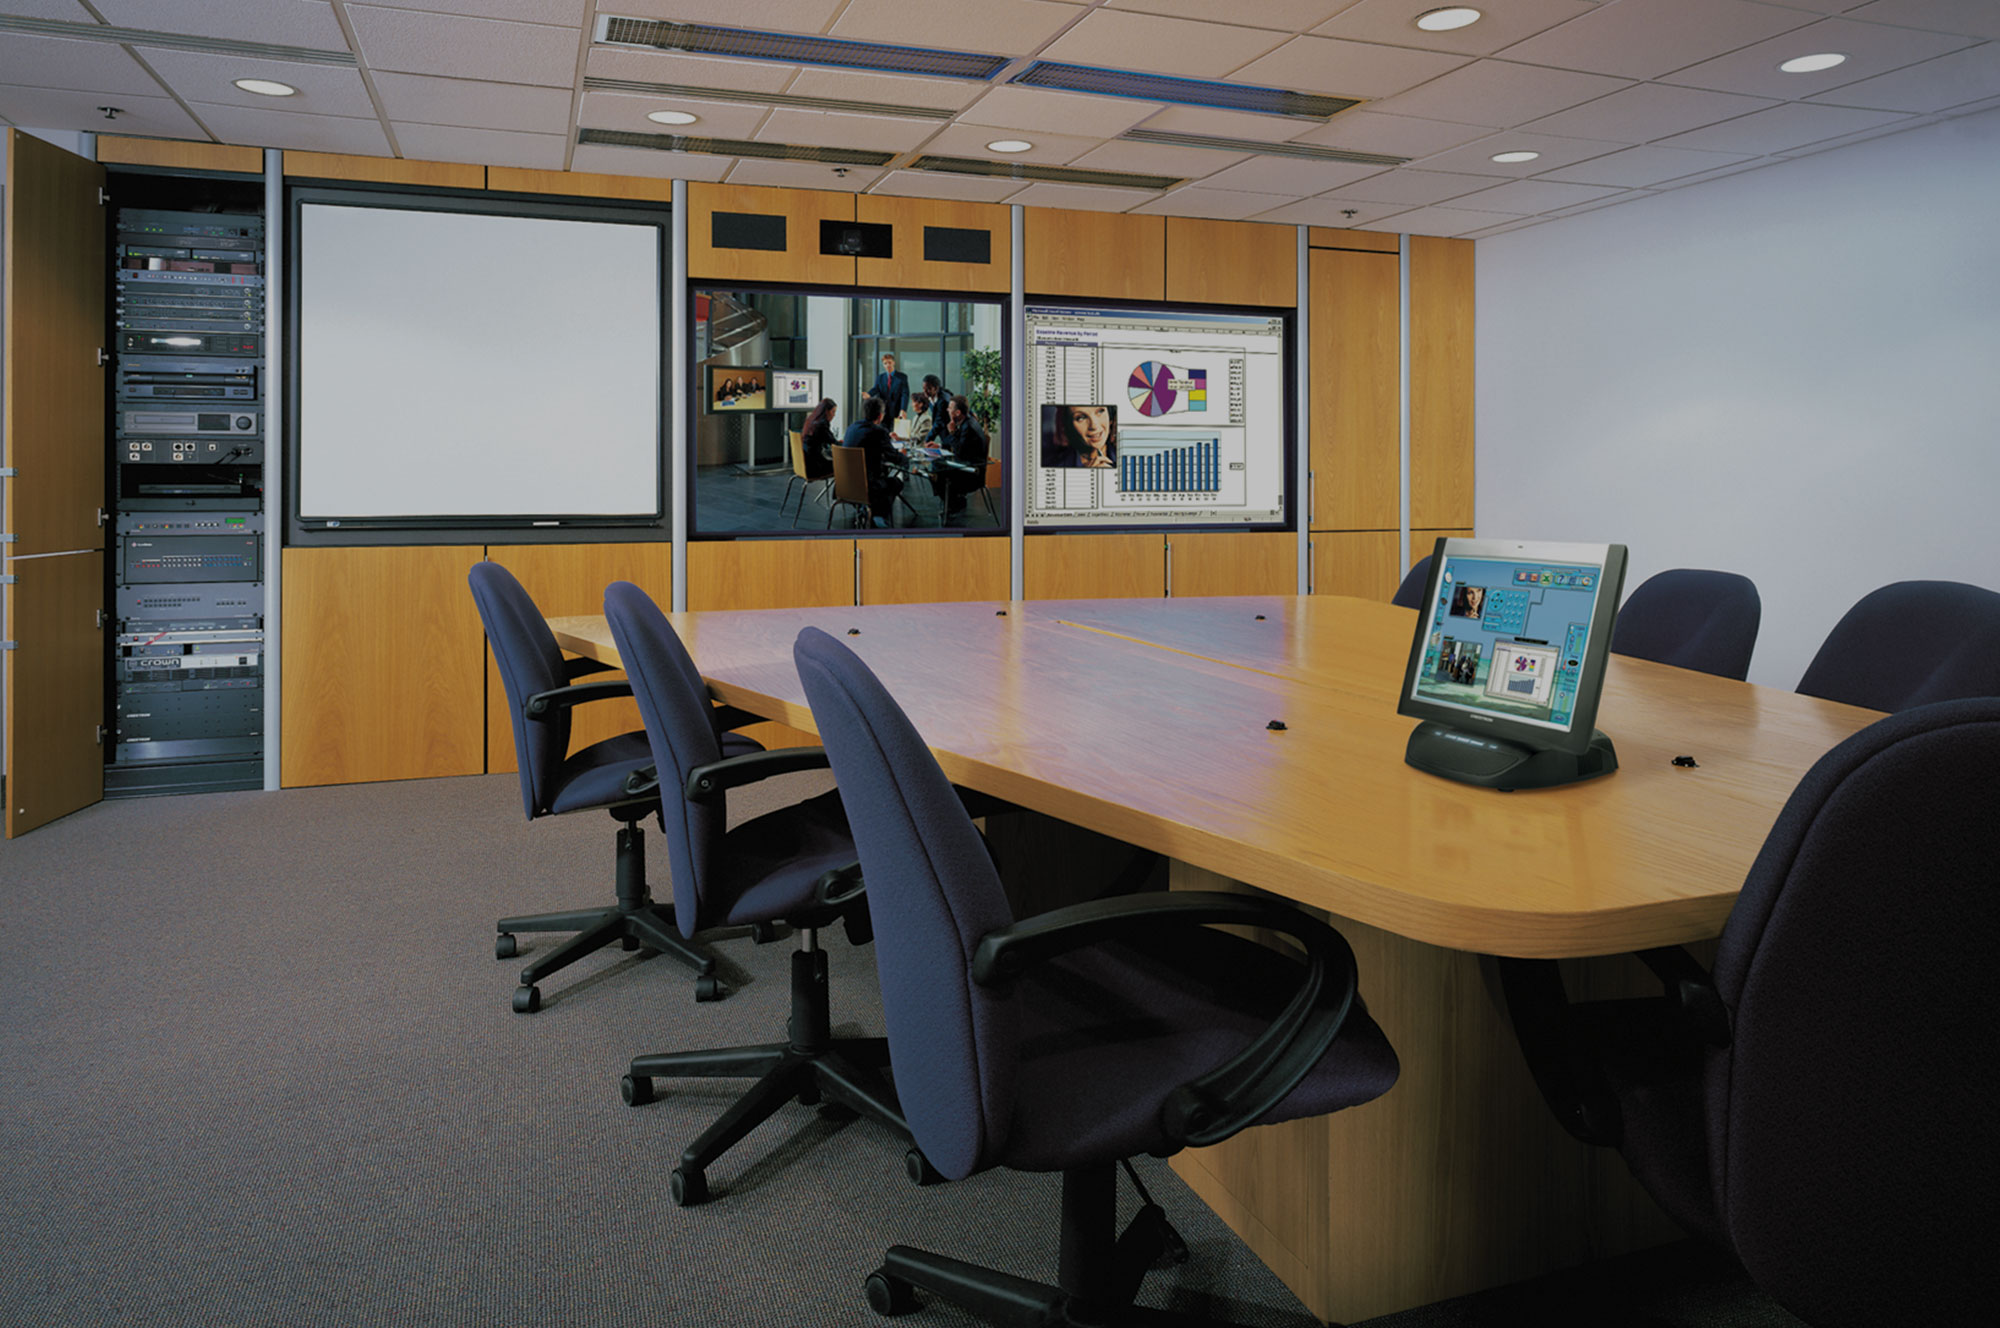 Boardroom/Conference Room Control